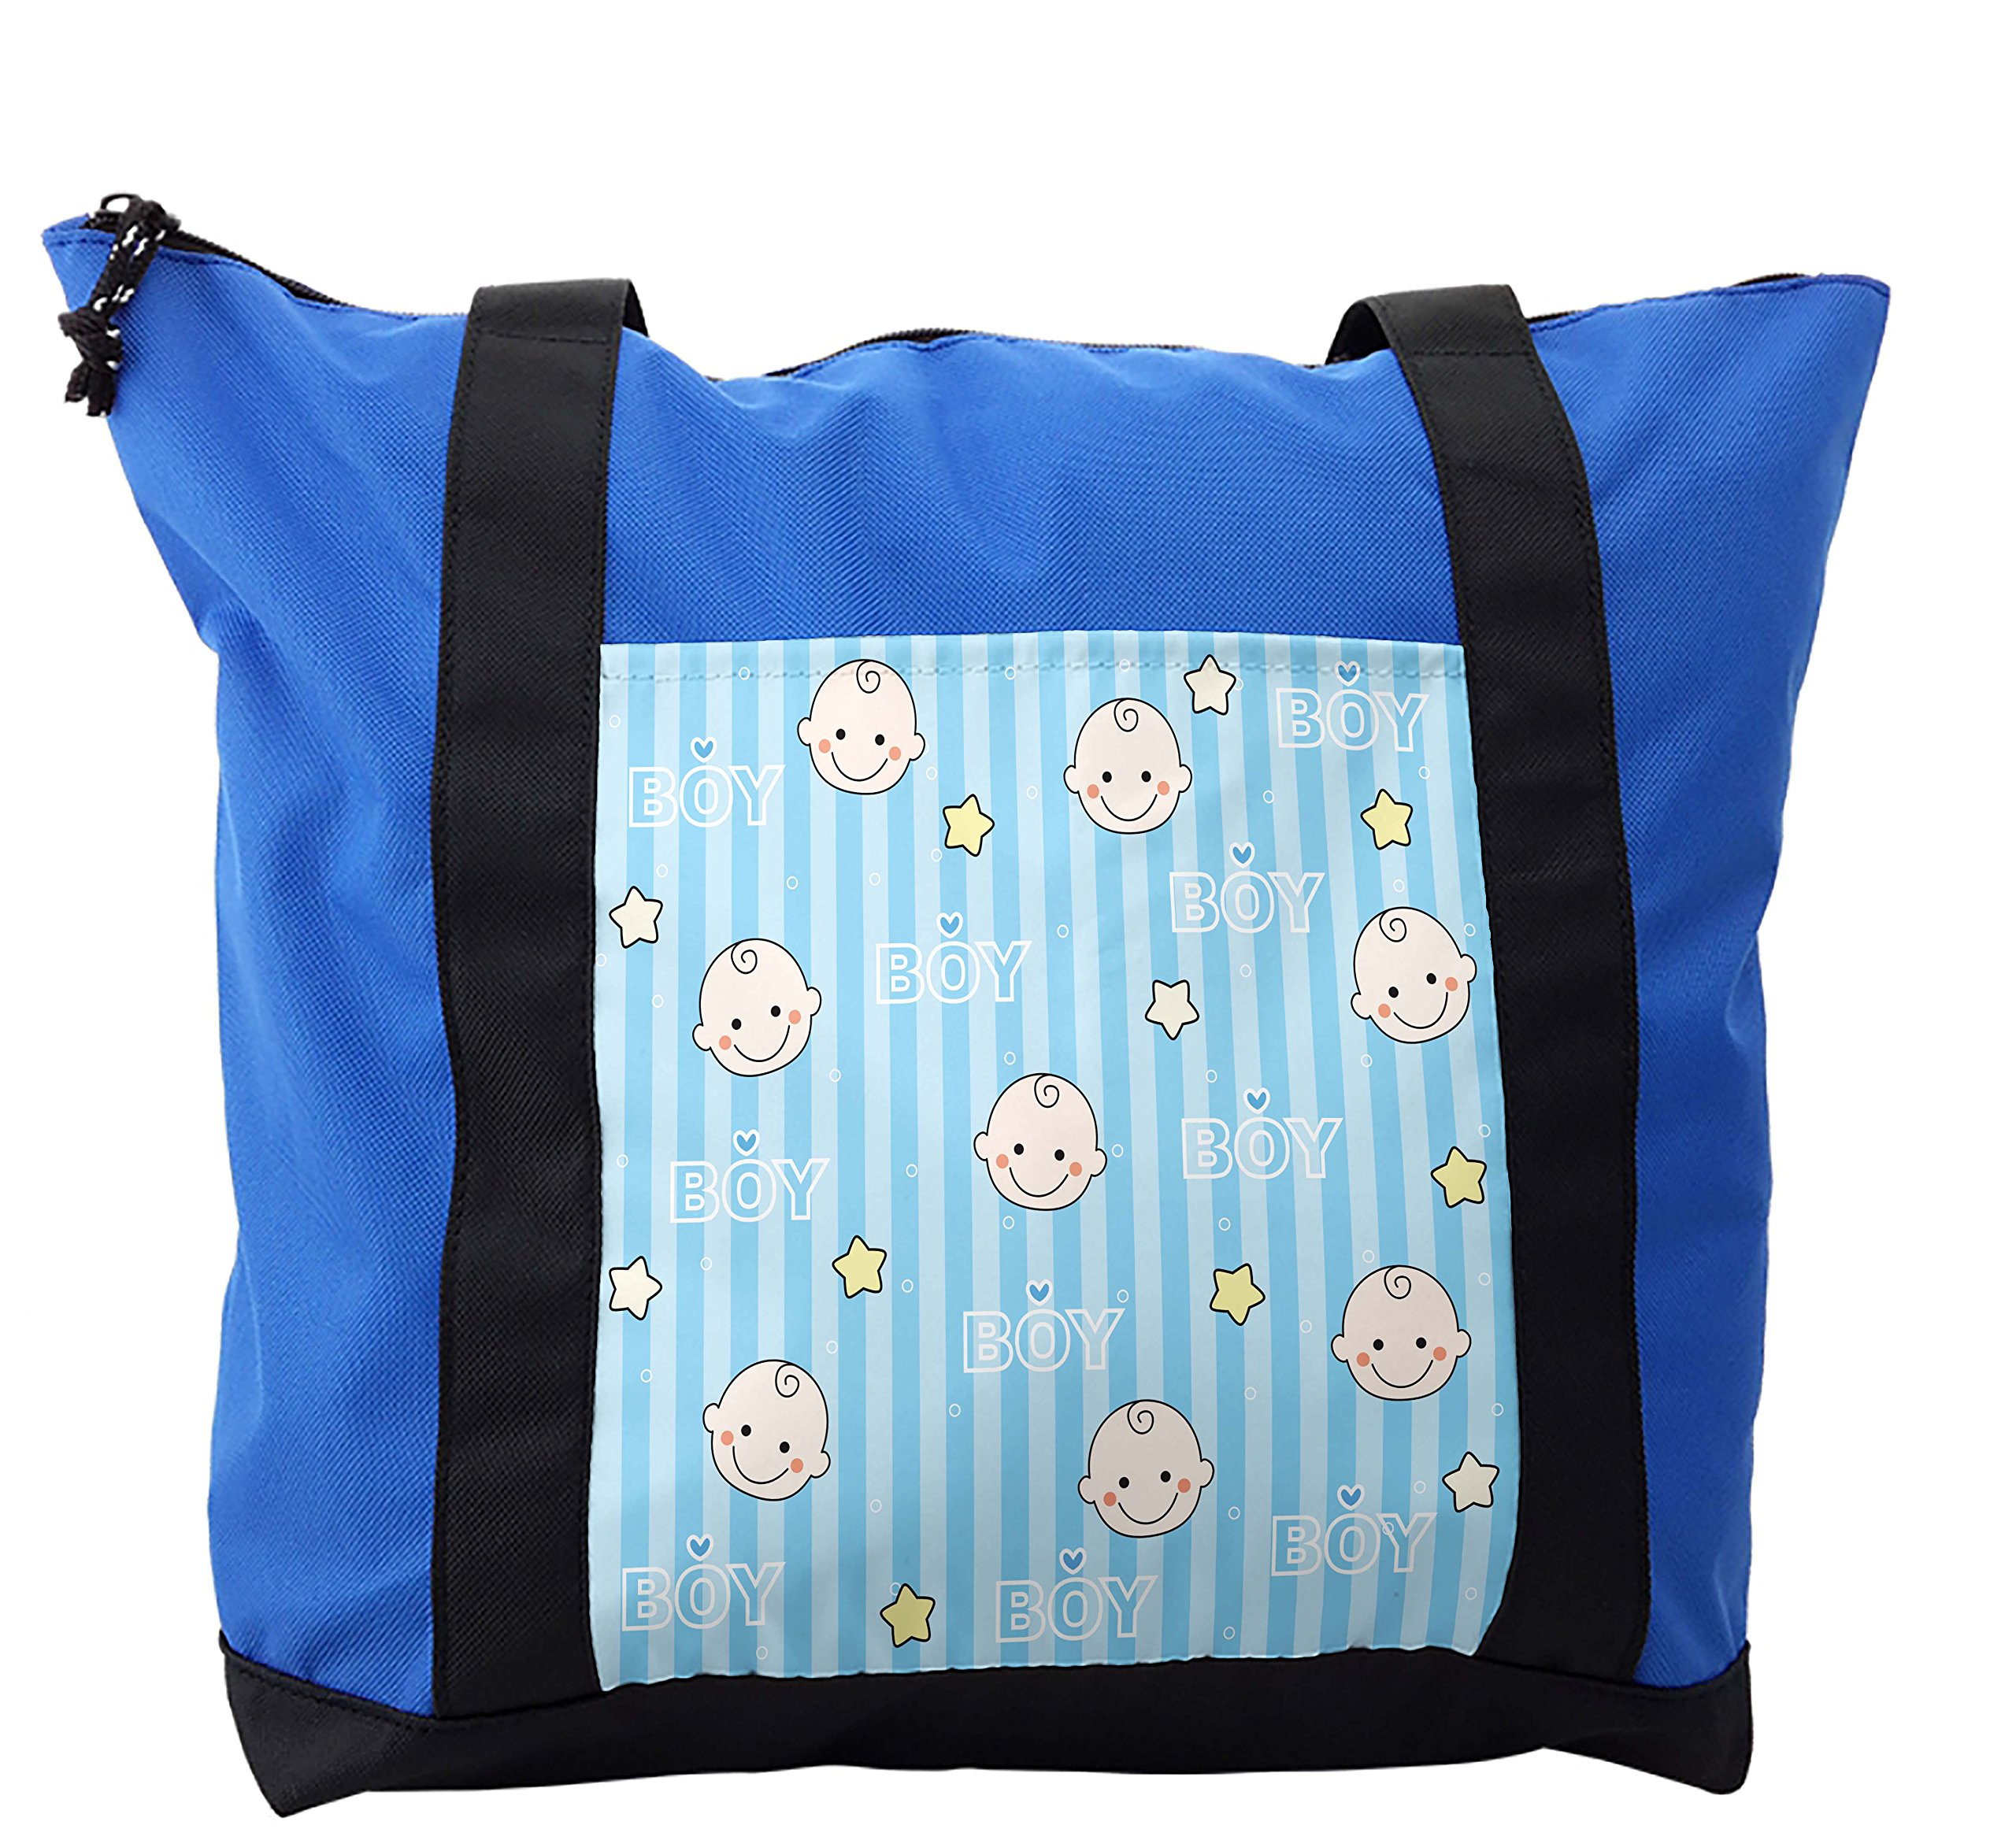 Lunarable Kids Shoulder Bag, Baby Shower Theme Its a Boy, Durable with Zipper by Lunarable